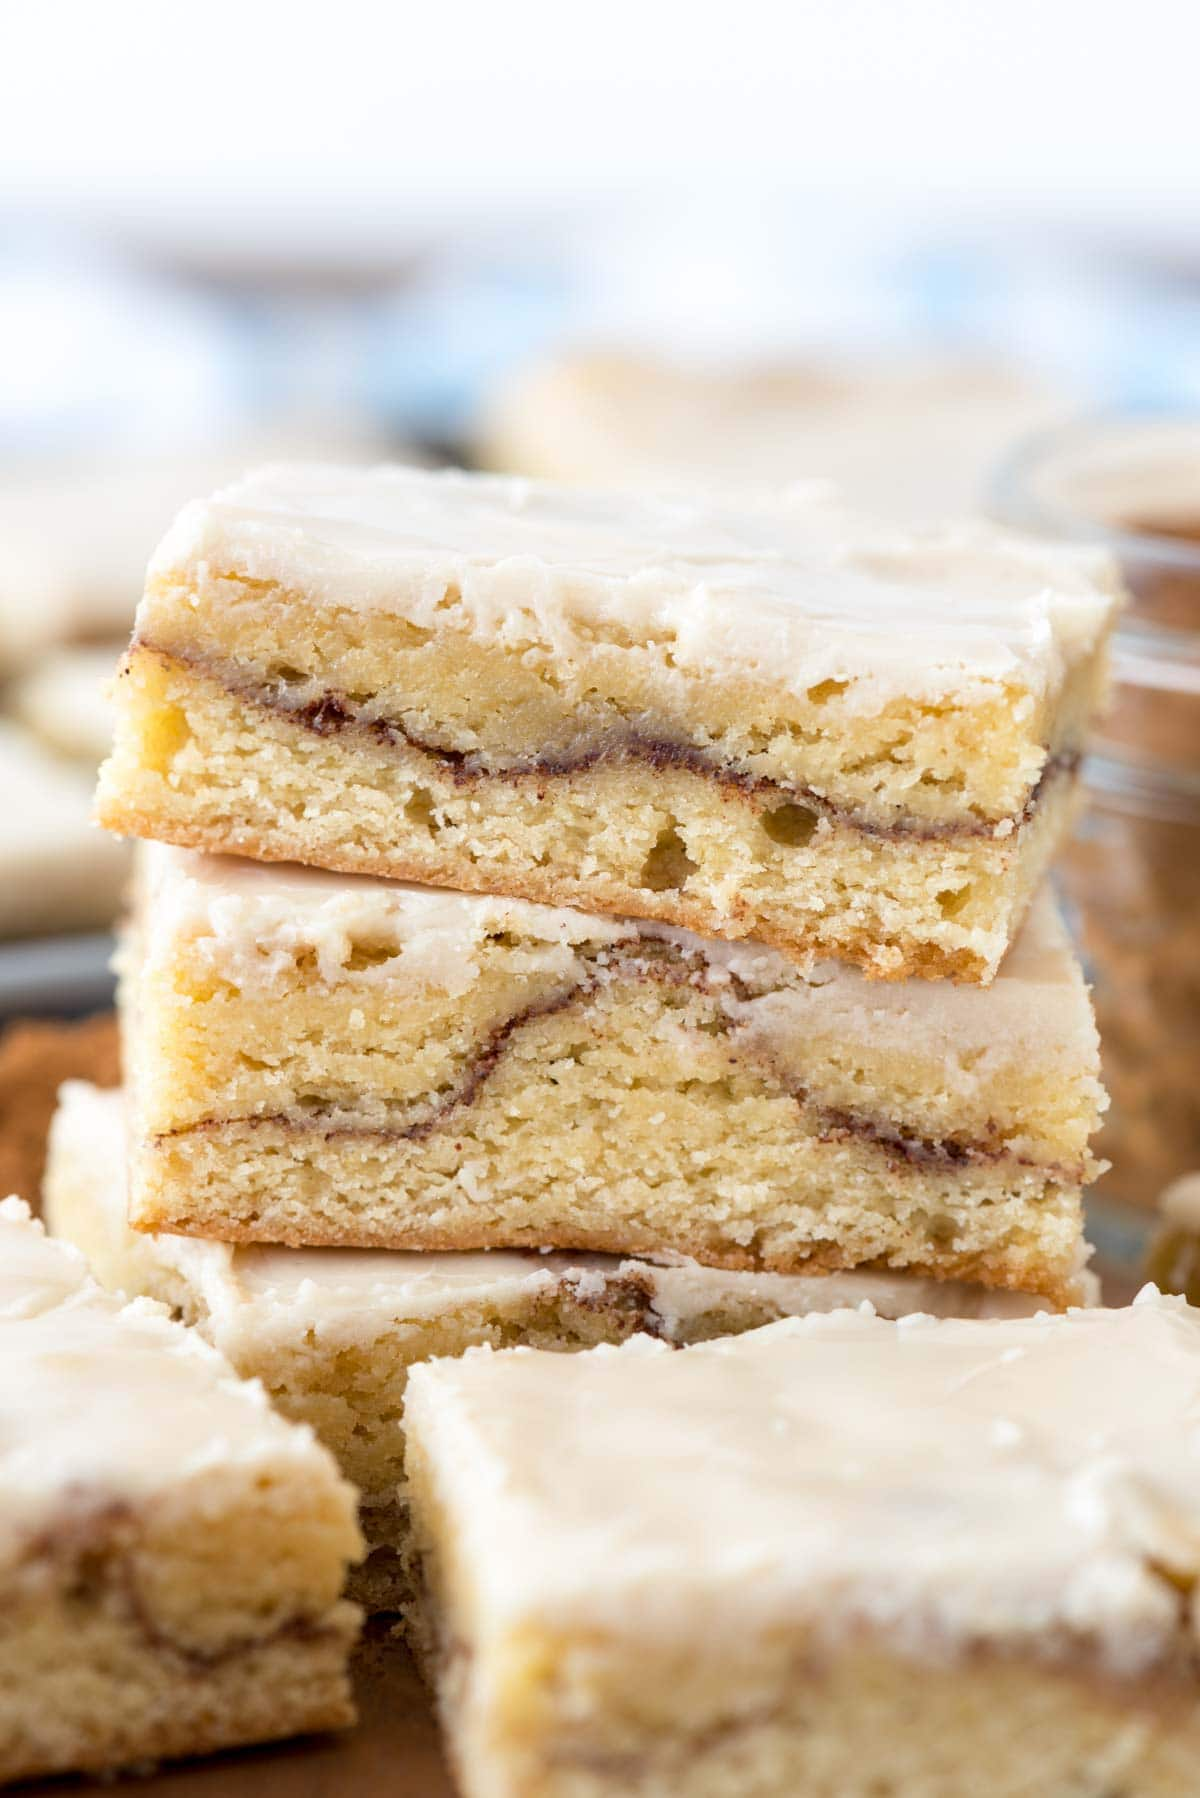 Snickerdoodle Bars - this easy cookie bar recipe is the cross between a gooey cakey blondie and a sugar cookie bar! It's FILLED with cinnamon sugar and topped with icing!